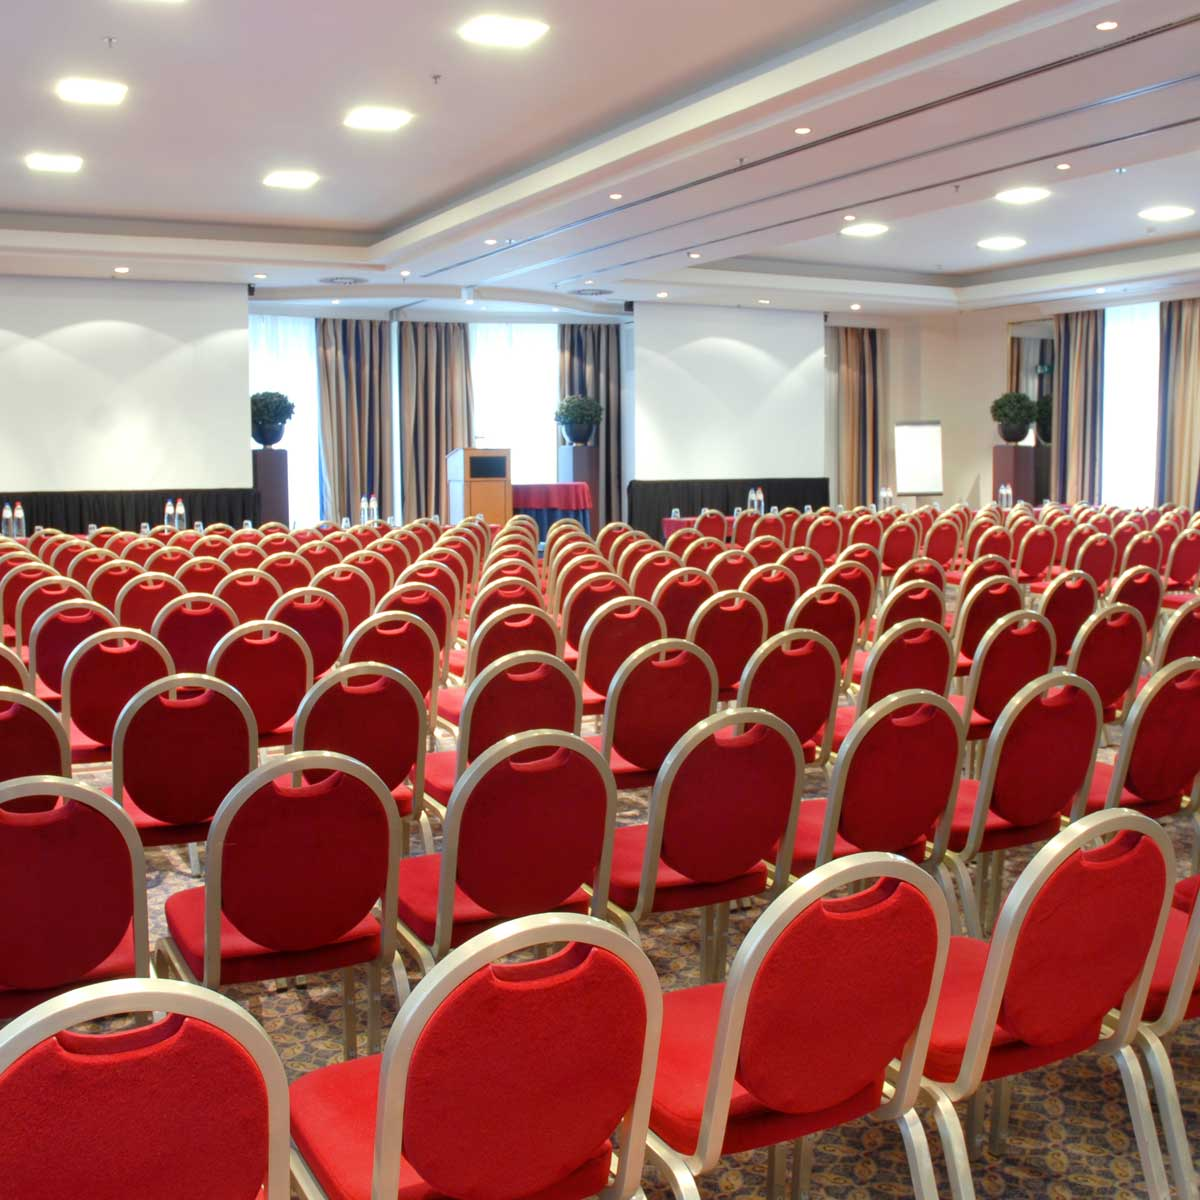 auditorium-and-banquet-event-hall-with-rows-of-red-velvet-chairs-for-guests